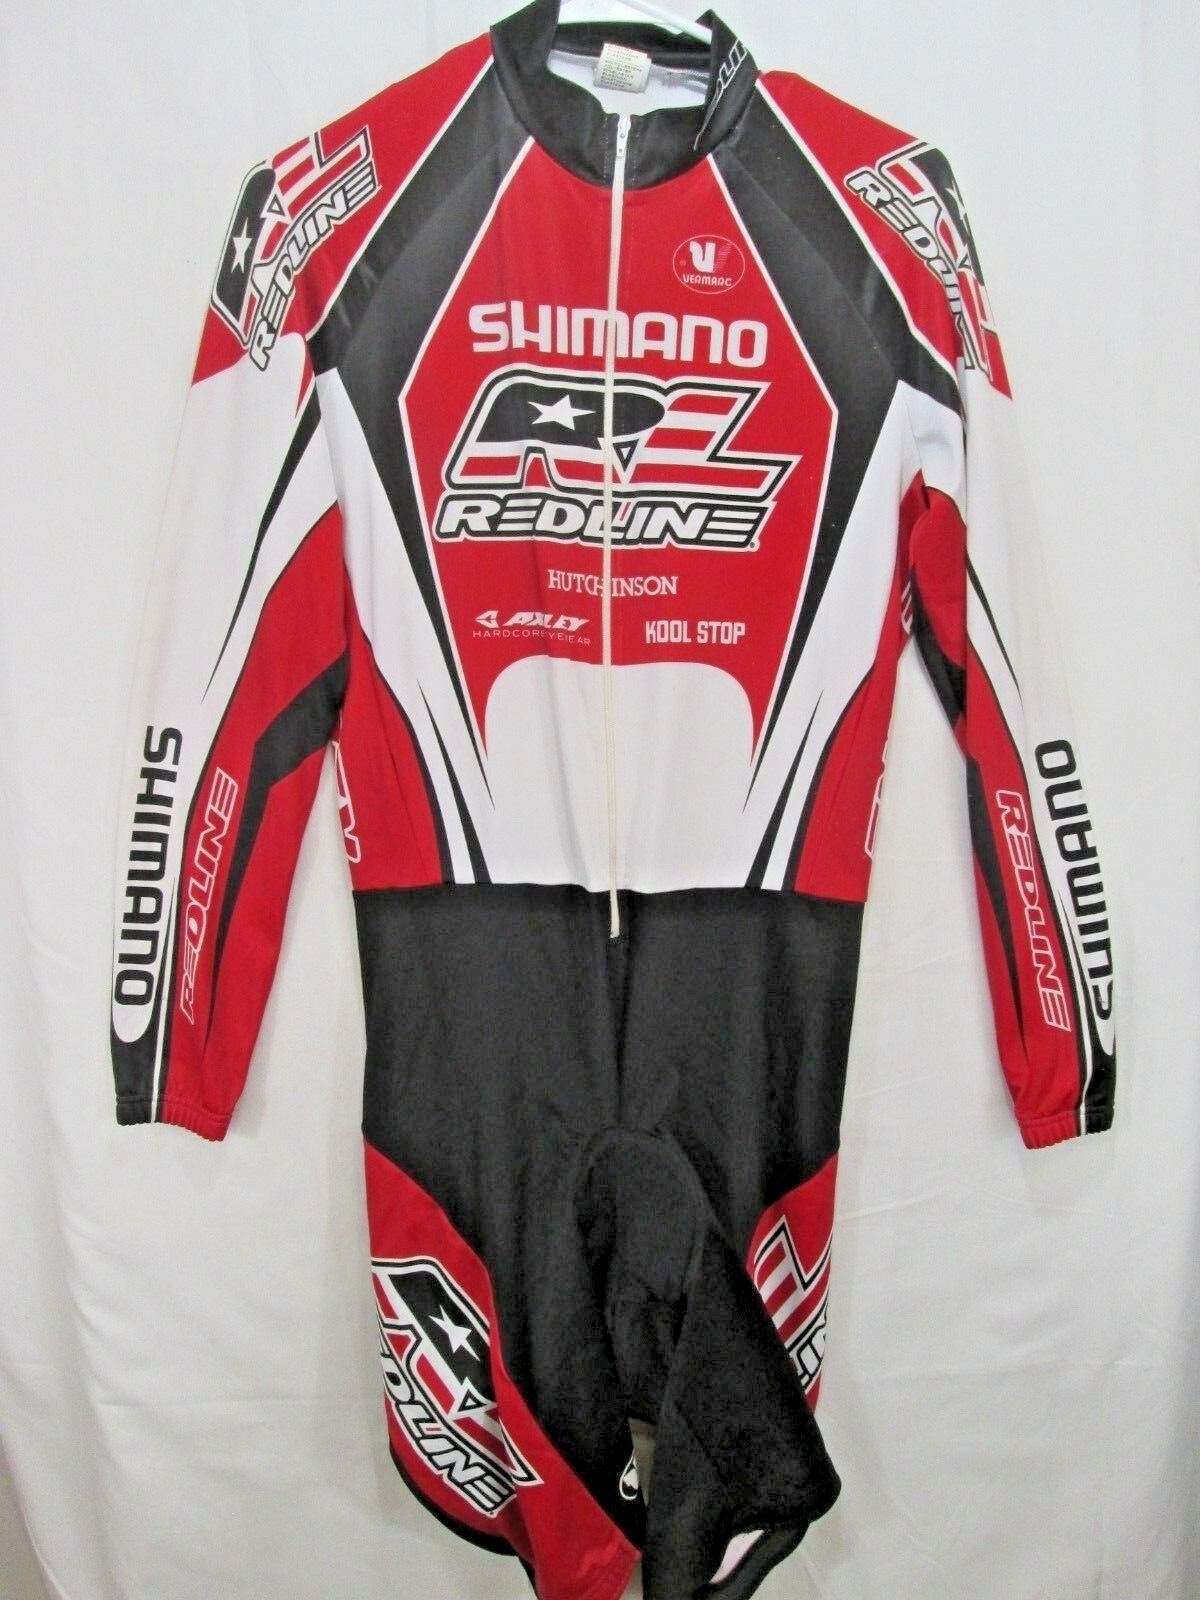 Redline  Shimano  bmx racing  suit shortie vintage By Vermarc  size XL  cost-effective